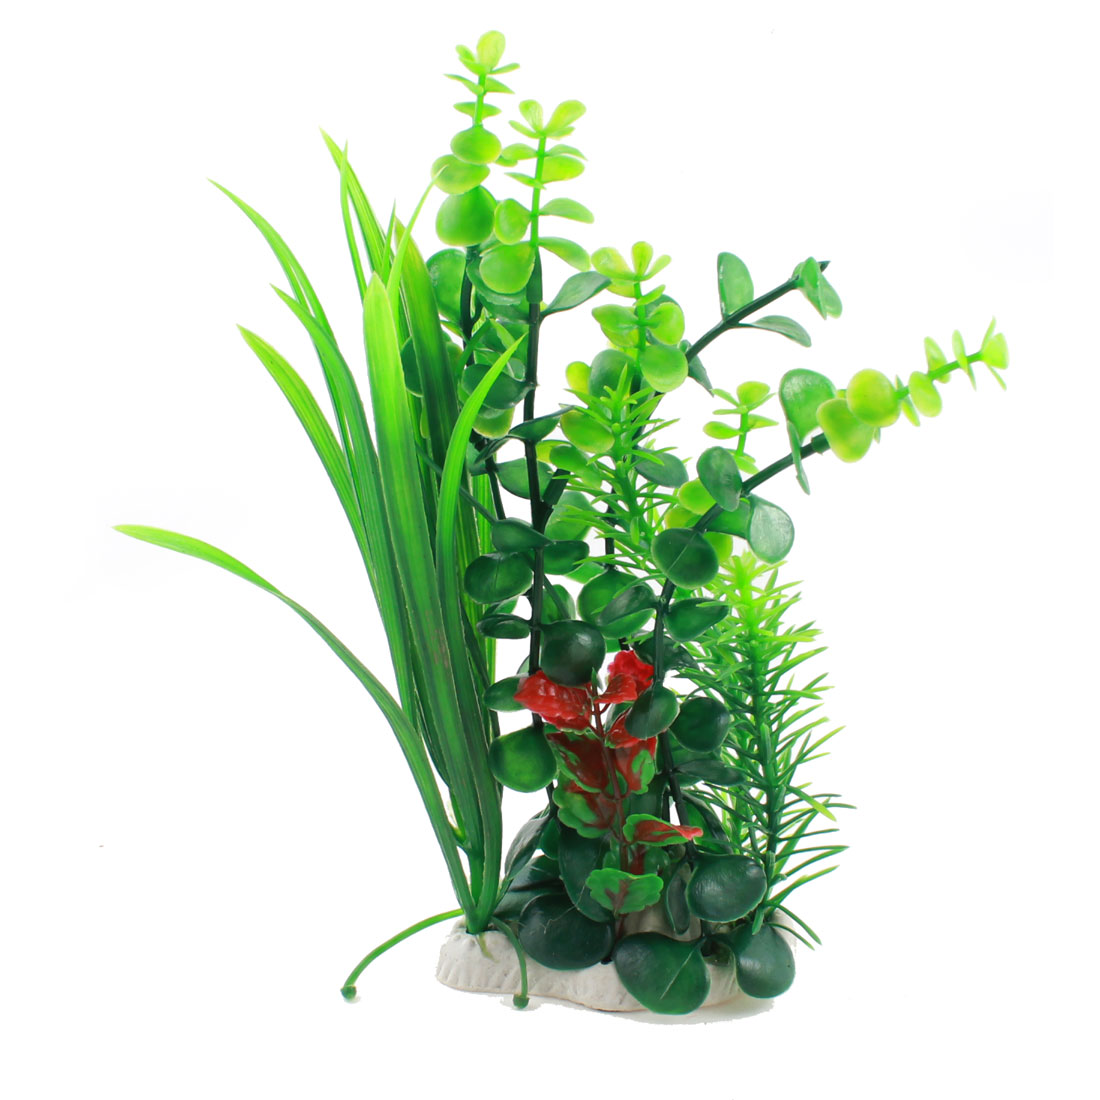 Fish Tank Green Plastic Artificial Water Grasses Ornament 23cm Height